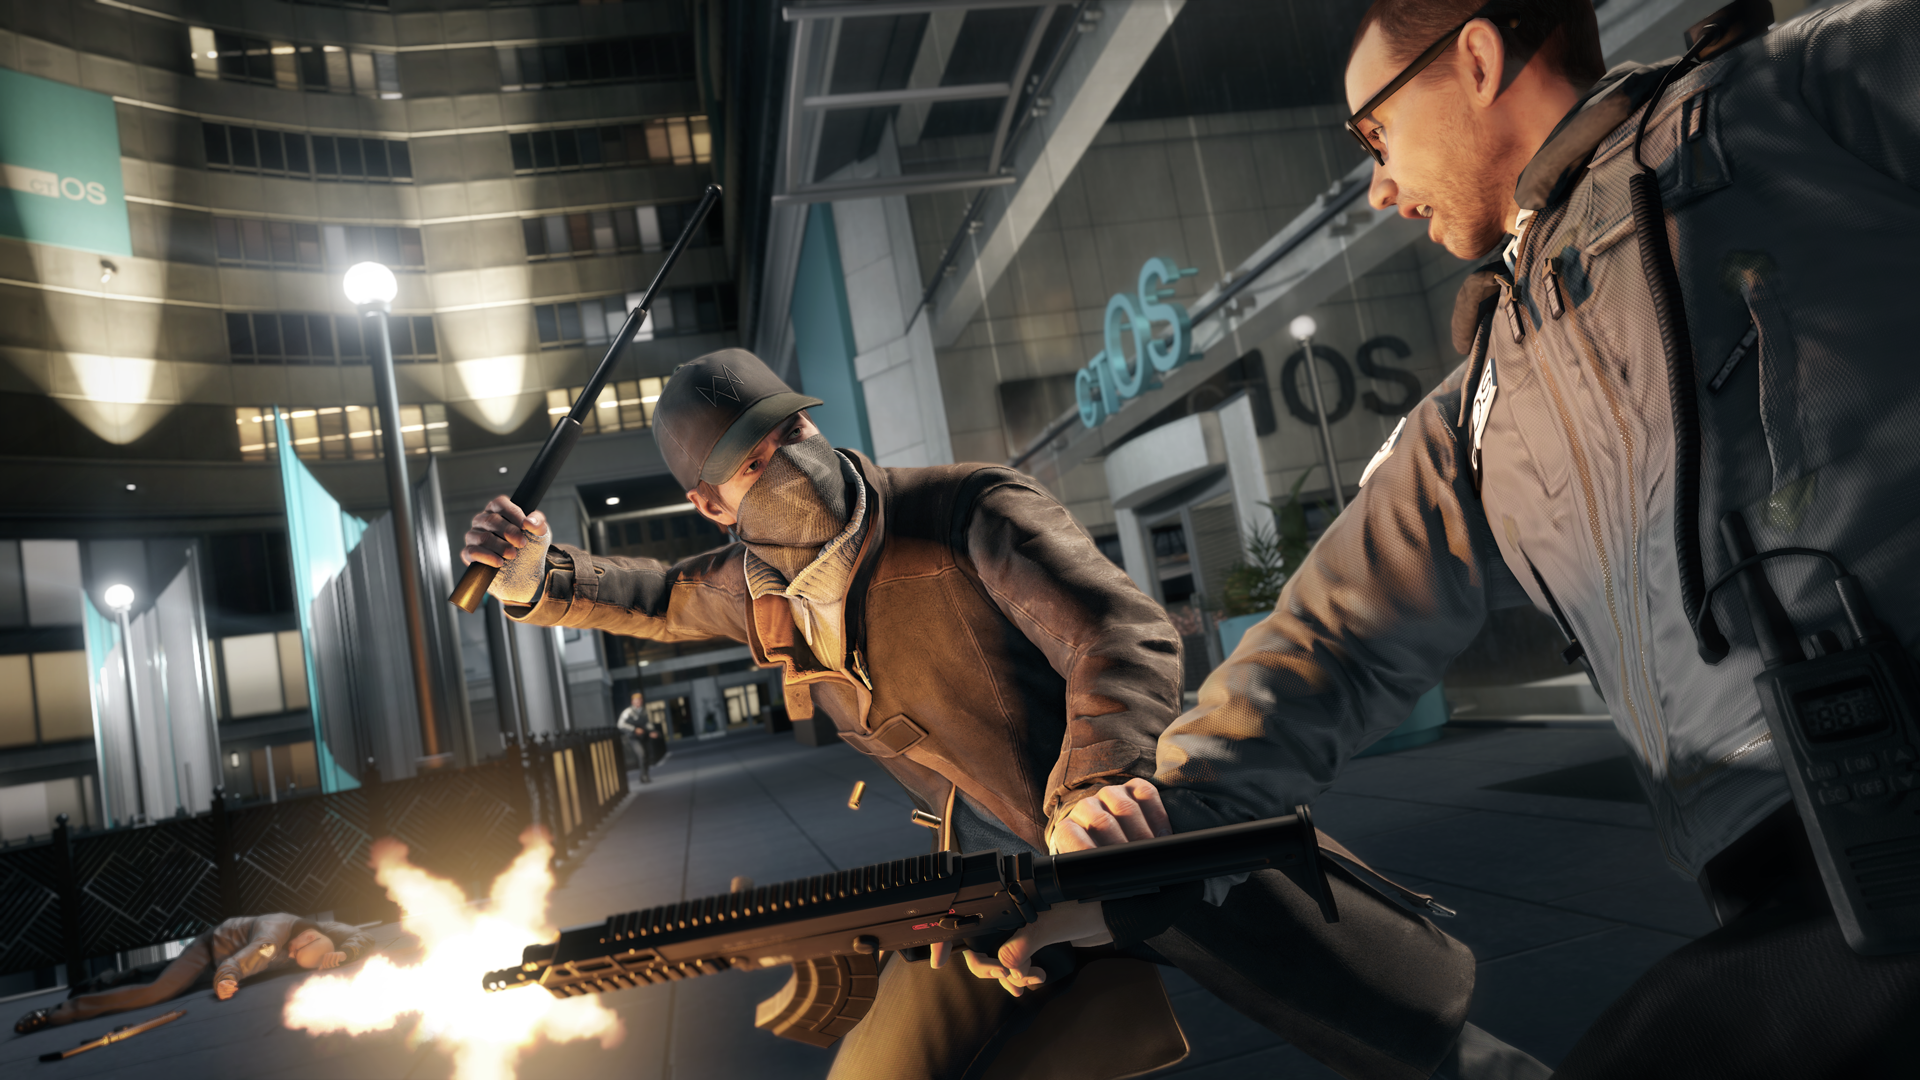 Why Watch Dogs went into hiding